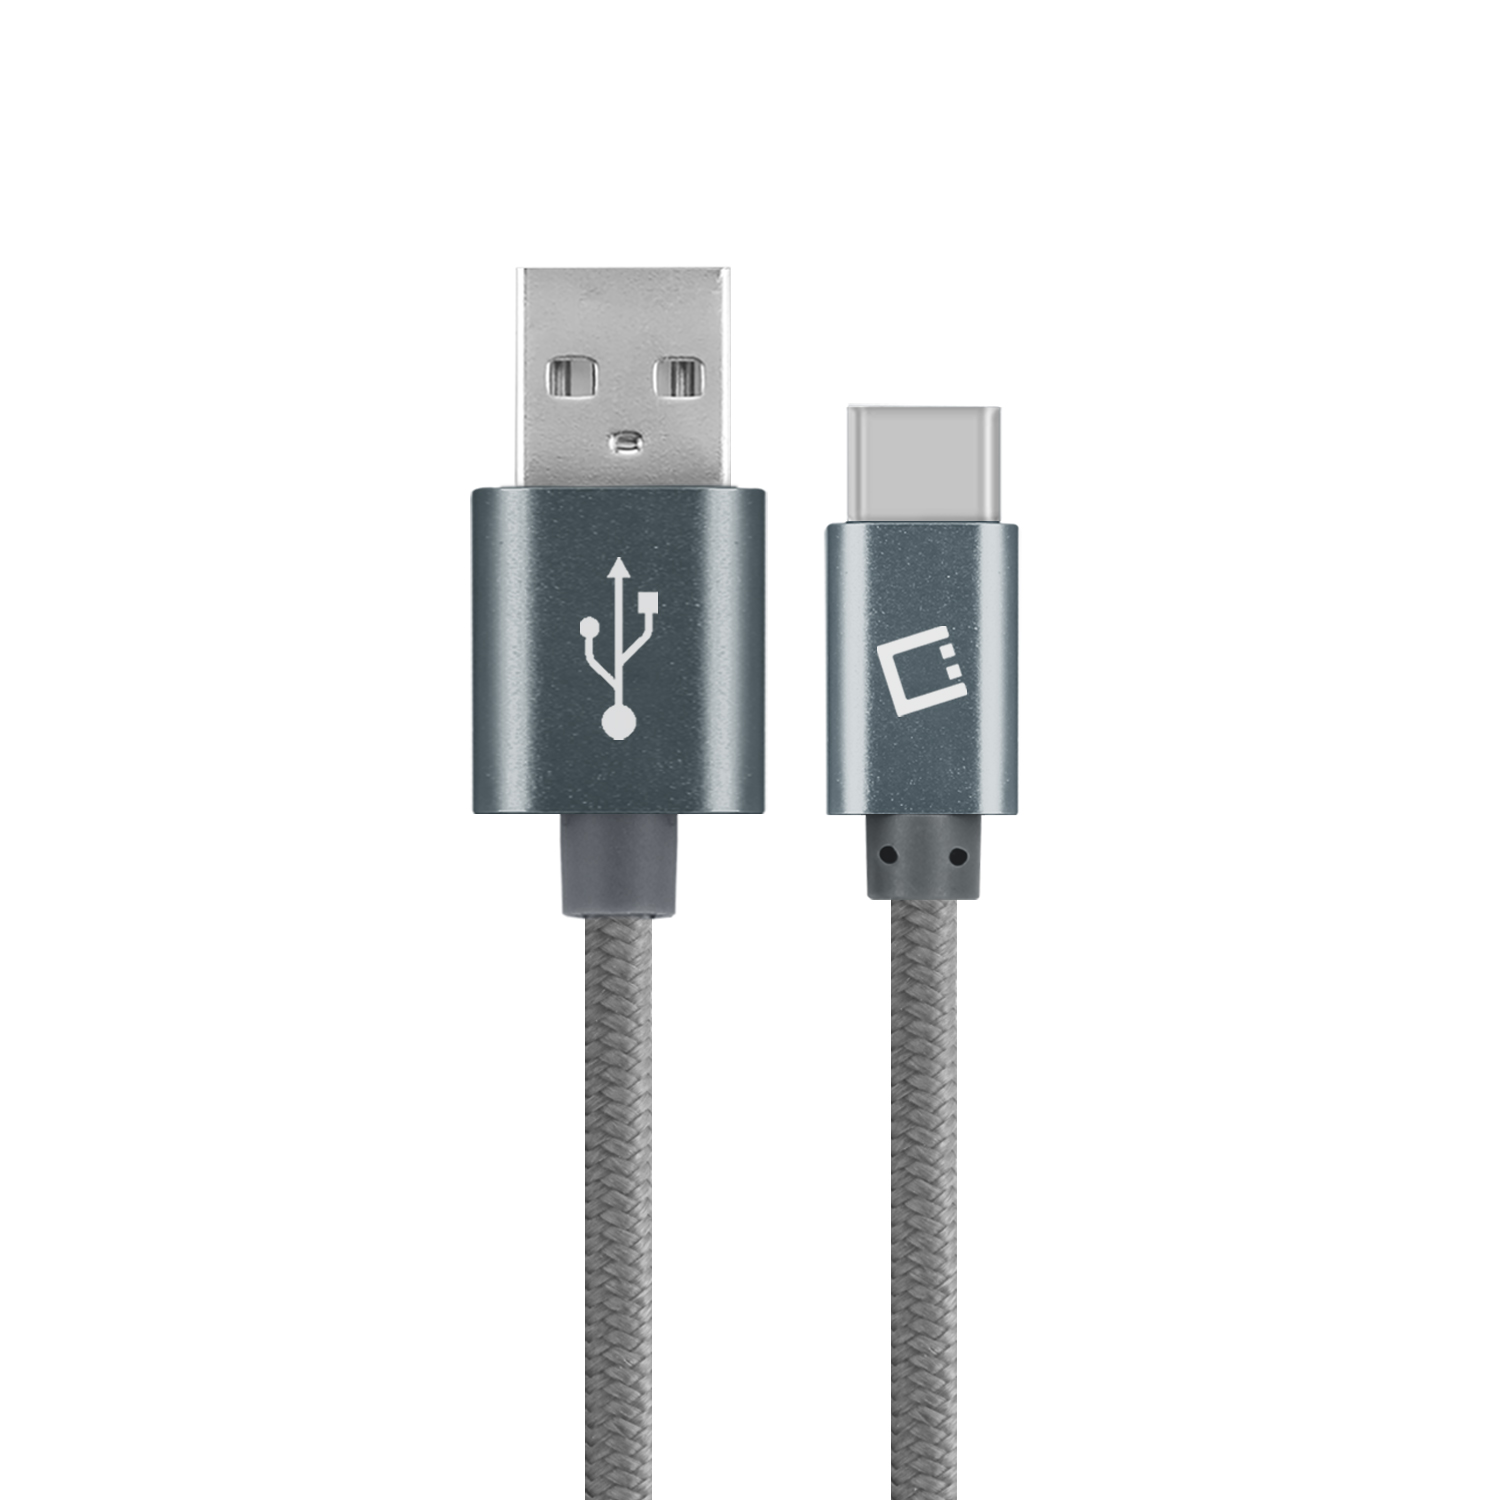 Samsung Galaxy S10e USB Type-C To Type-A Braided Data Power Cable Grey 6ft Braided